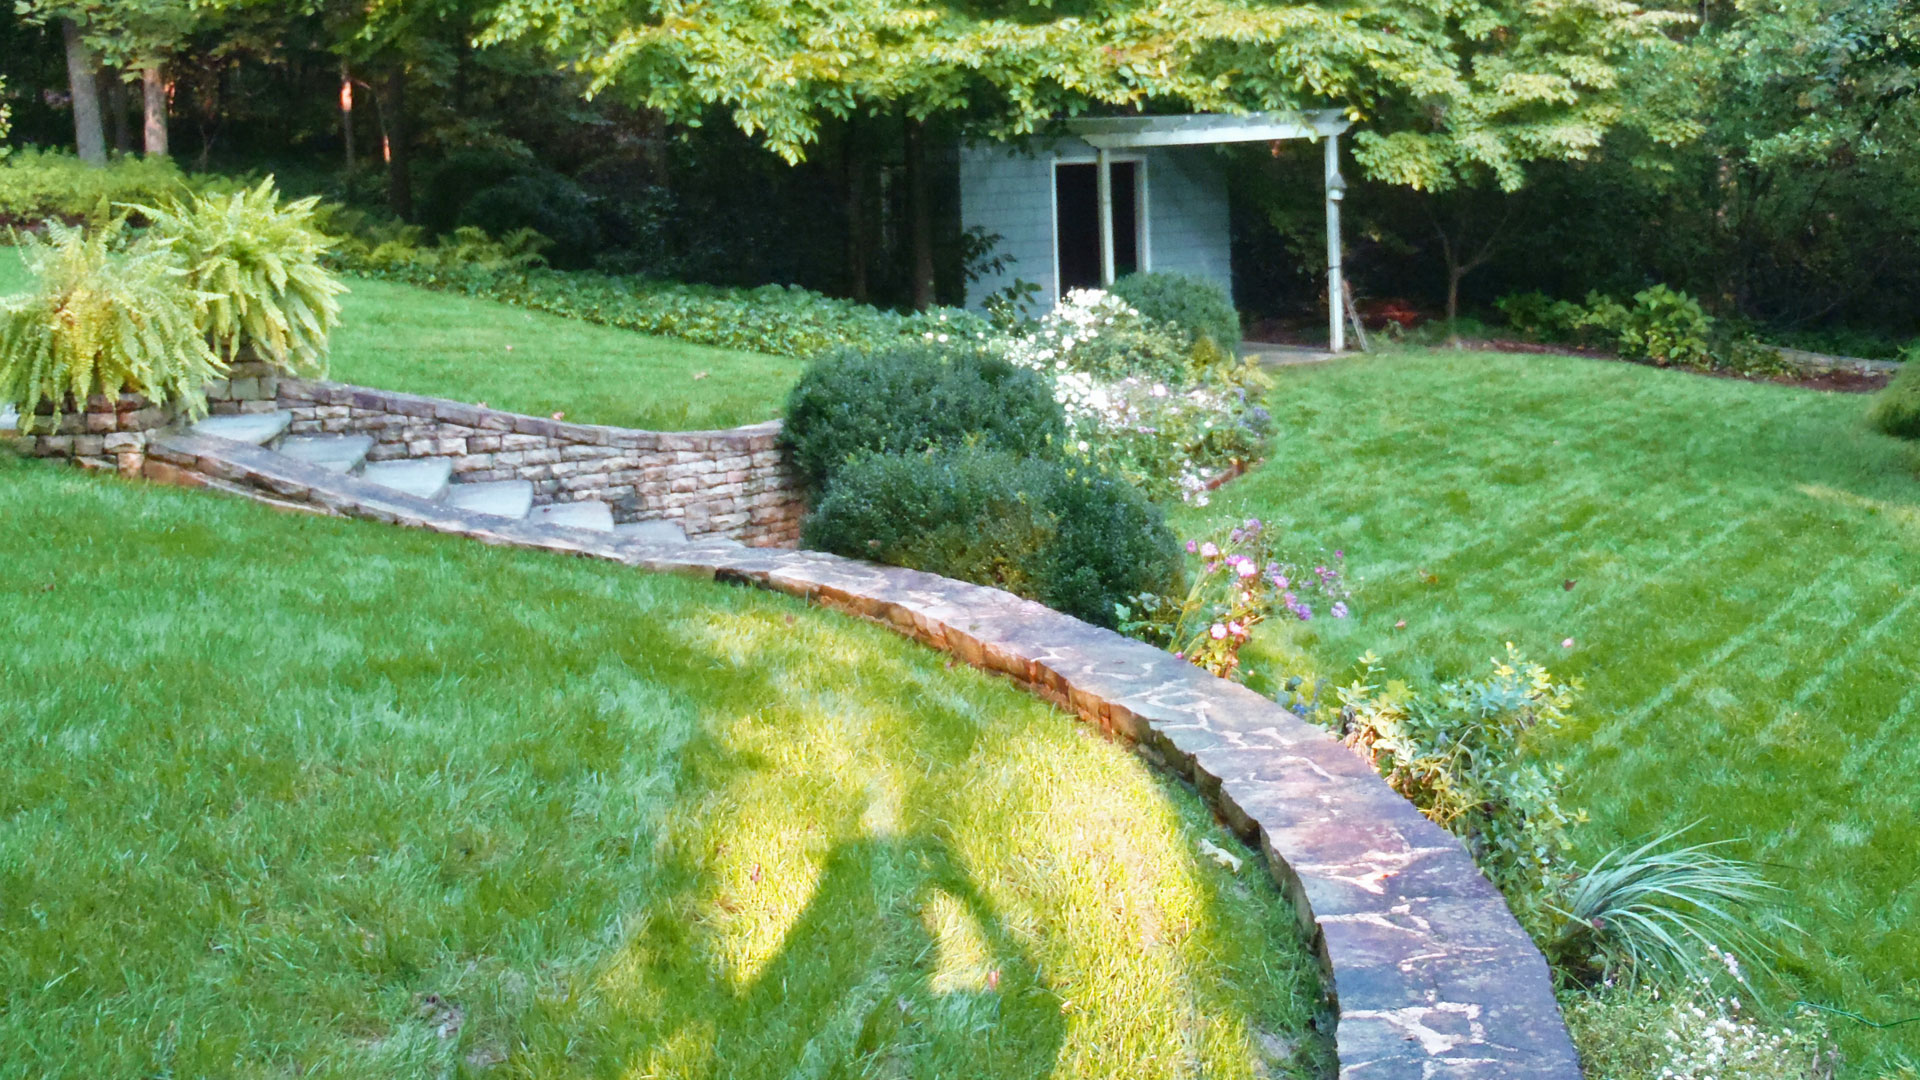 Backyard with hardscaping, steps, retaining wall, and mowed lawn.